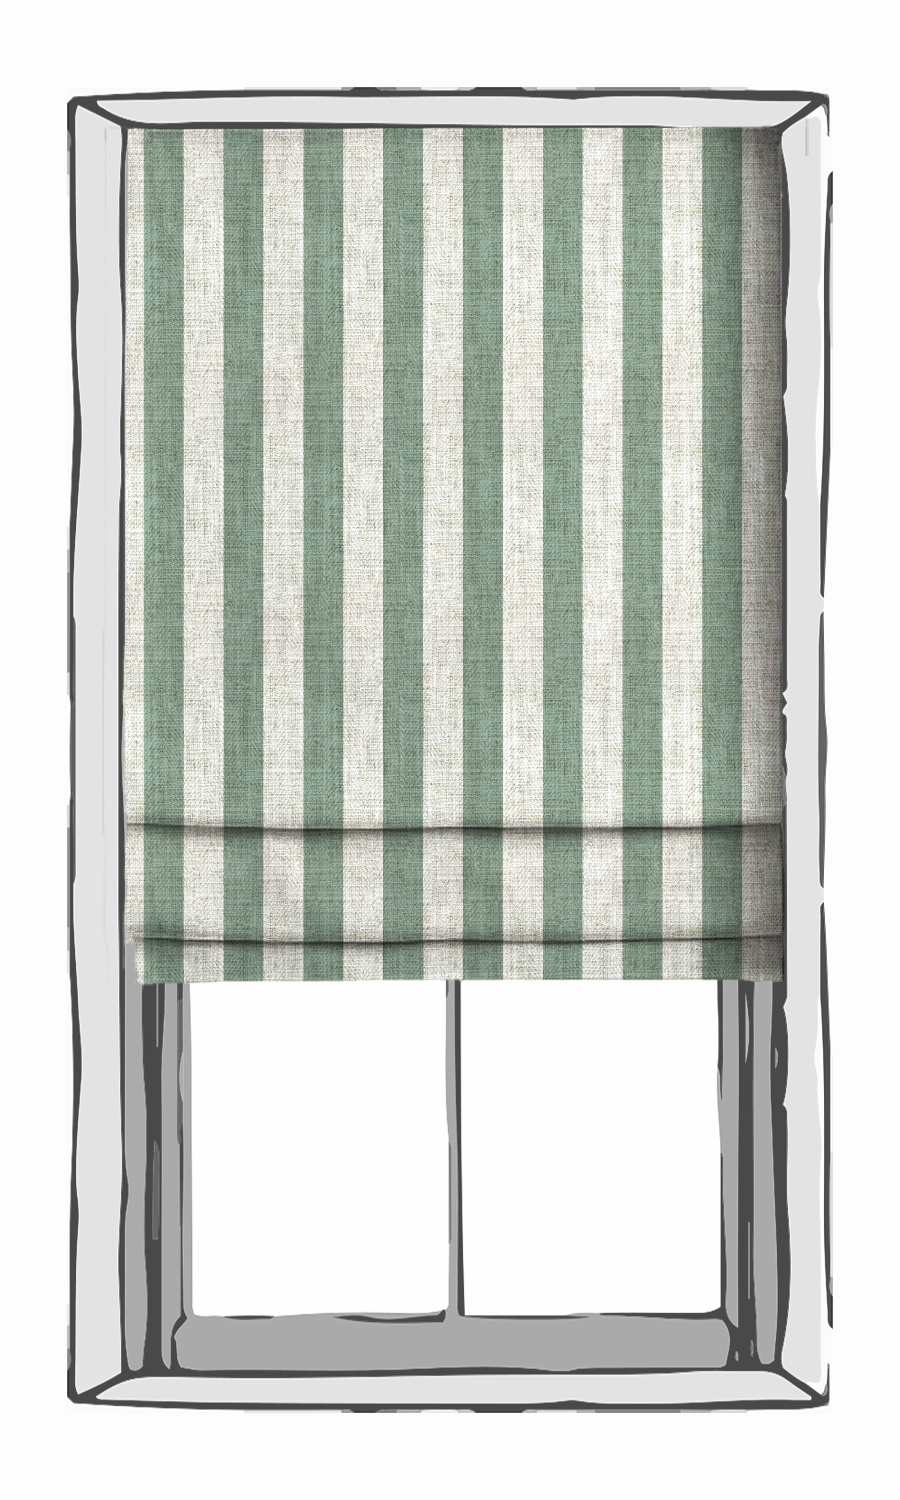 Blue and White Striped Roman Blind